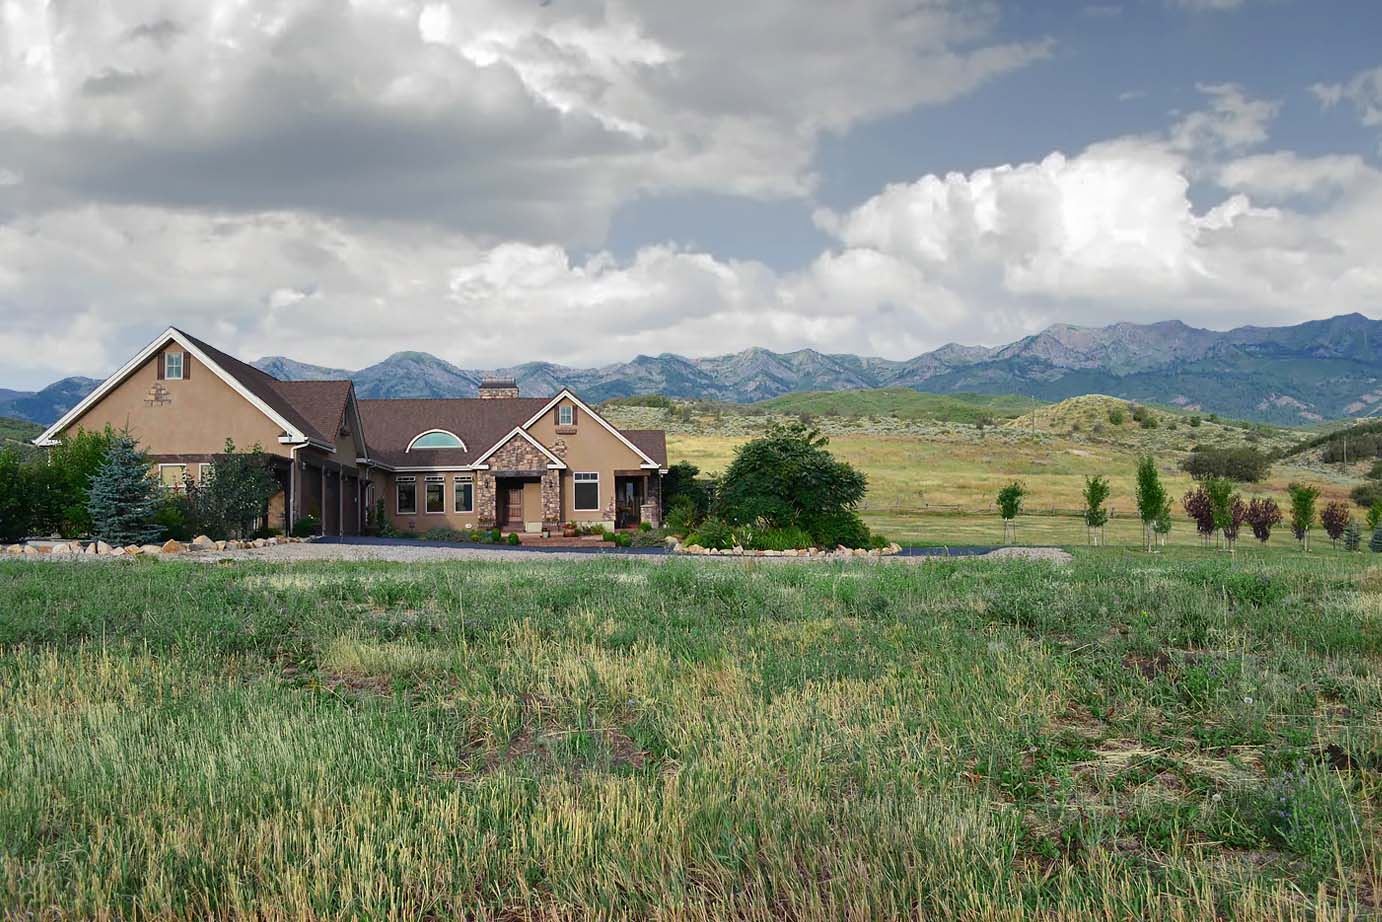 Picture of Mountain Residential Design, copyright 2017 Mountain West Architecture.